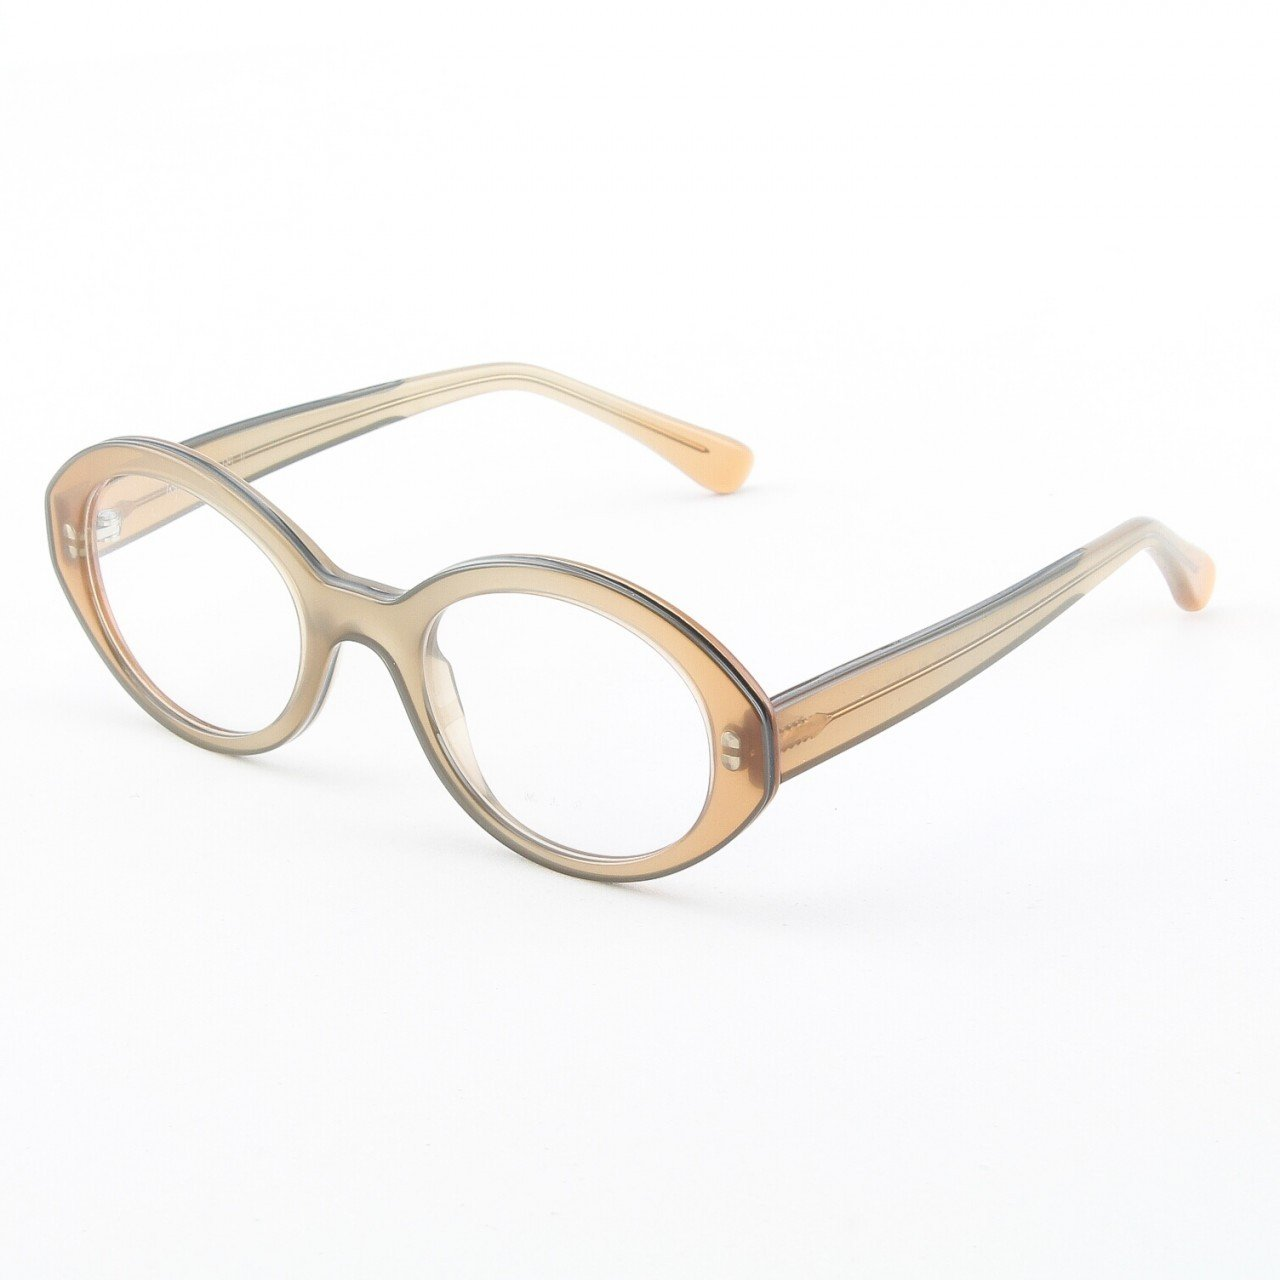 Marni MA651S Eyeglasses Col. 13 Light Brown Crystal with Gold Stud Accents and Clear Lenses